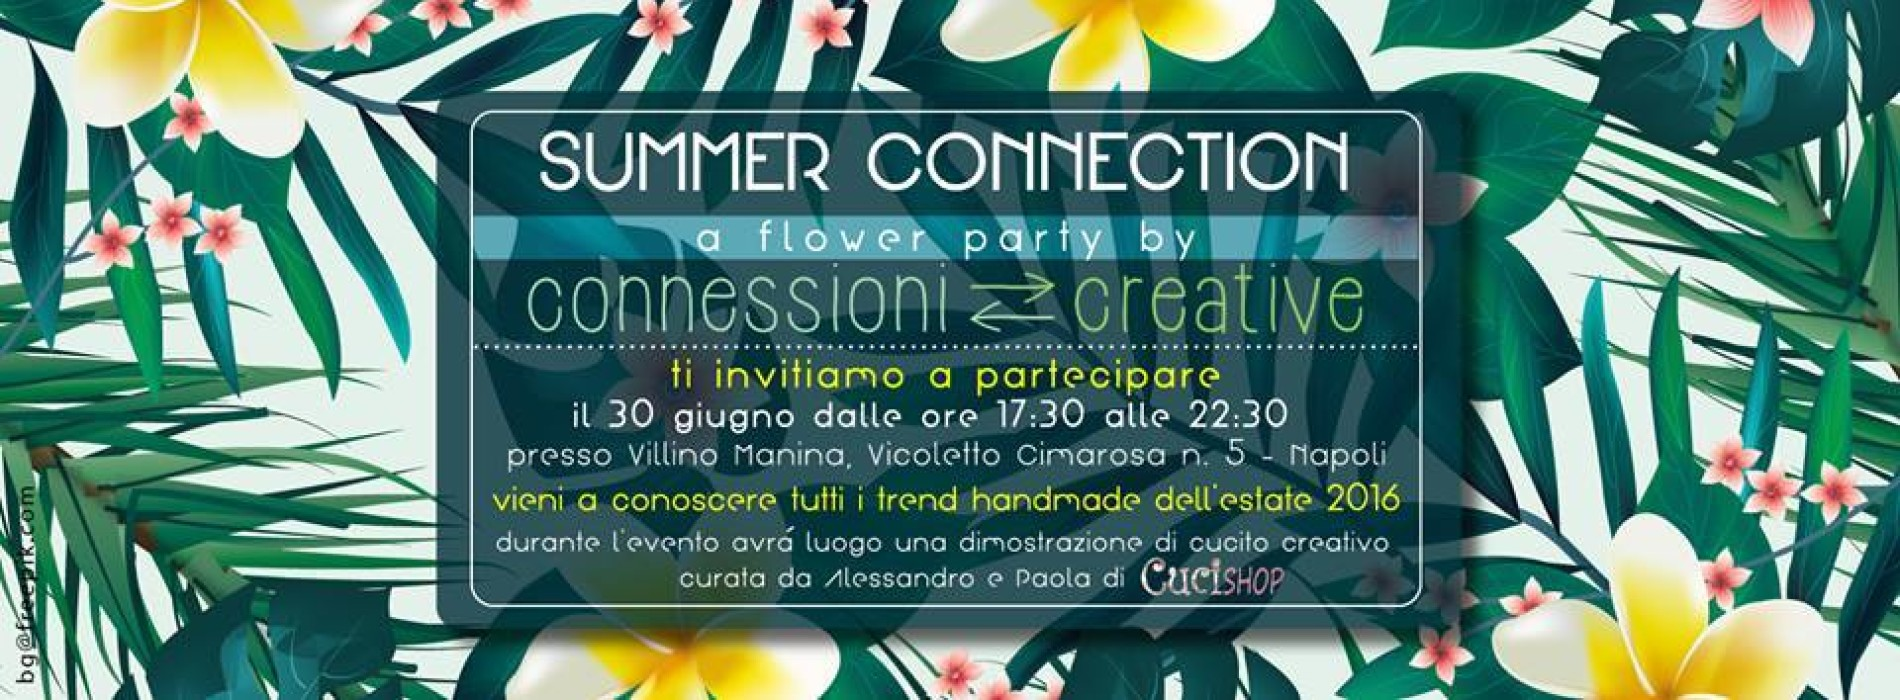 Summer Connection: A flower party by Connessioni Creative